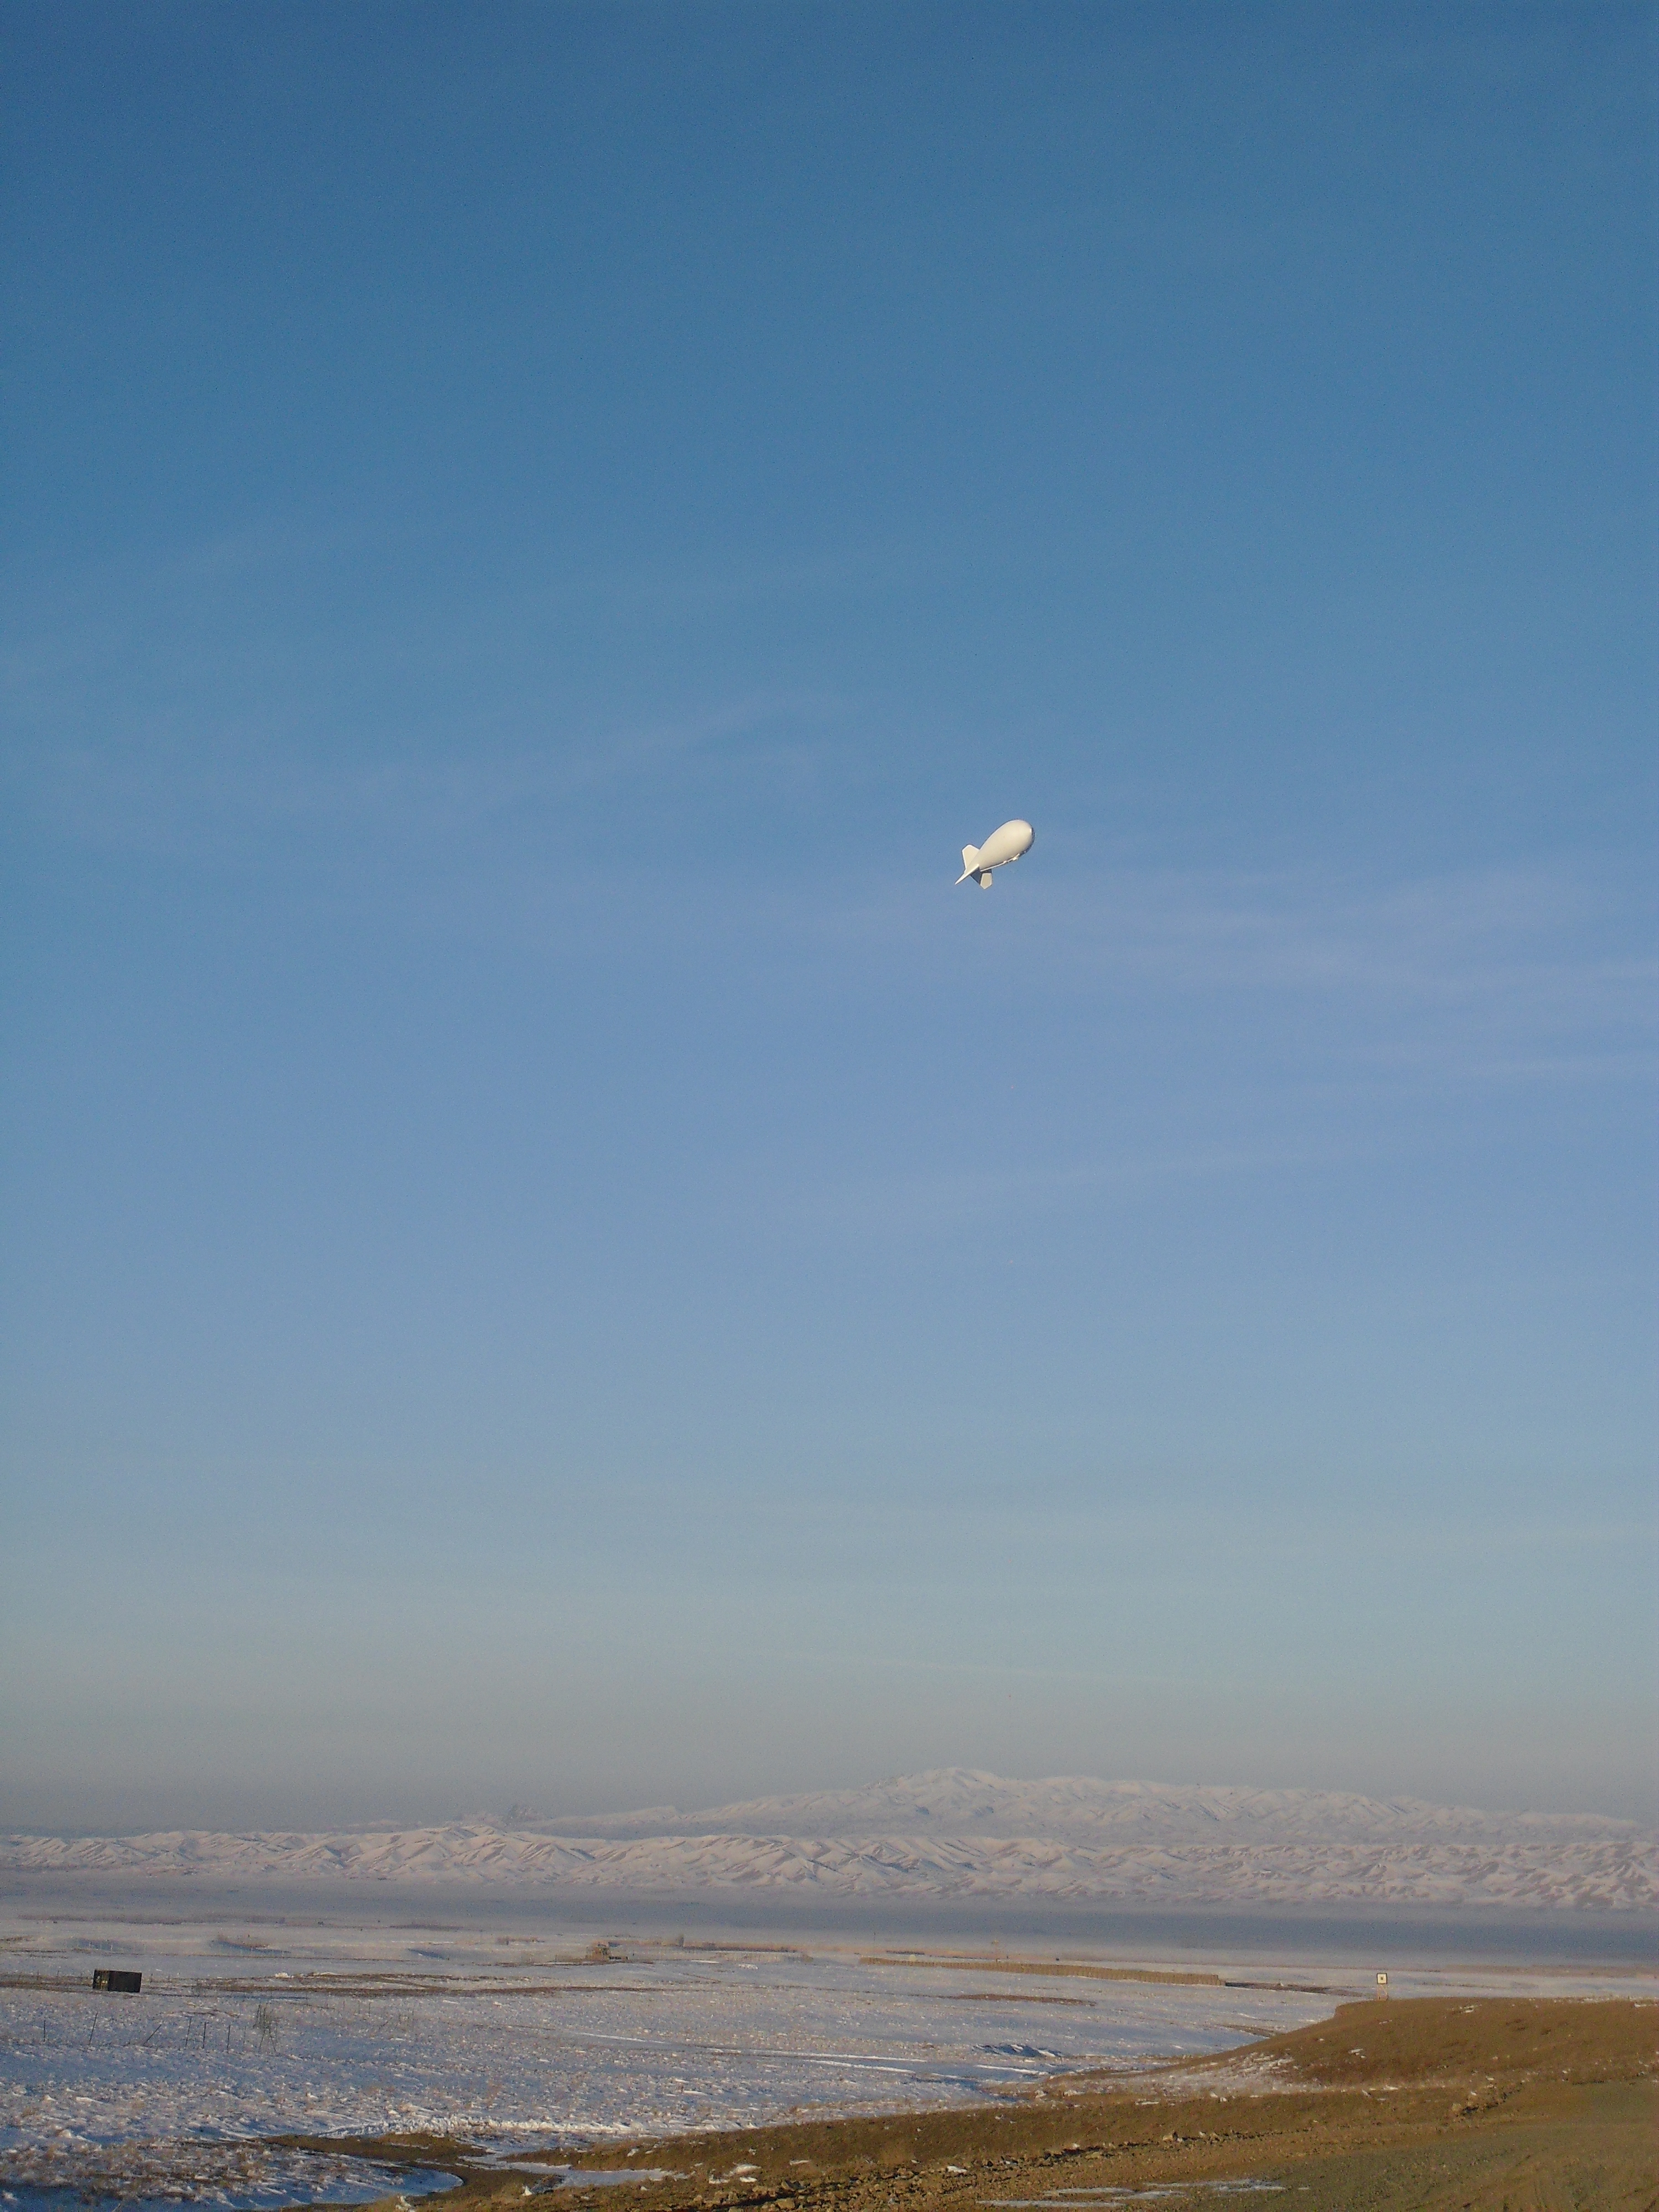 Weather balloon over FOB Sharana, Afghanistan -from author's collection